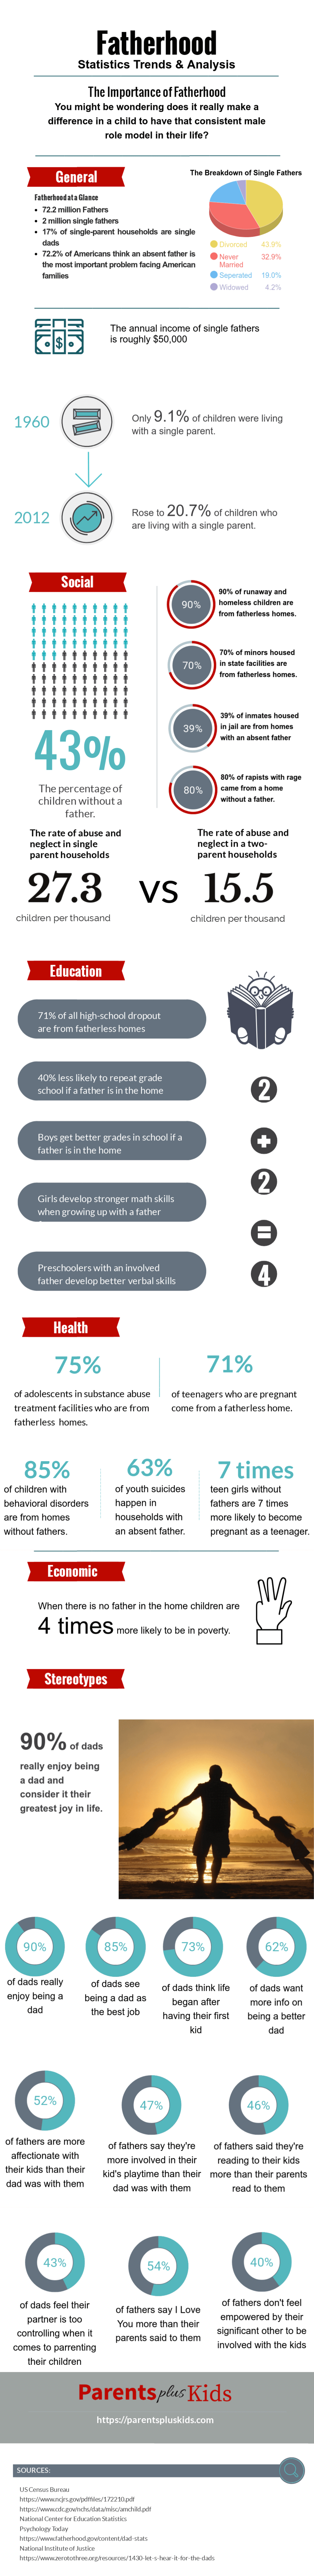 Fatherhood Statistics Infographic  Check out the article to see the statistics on fatherhood in America.